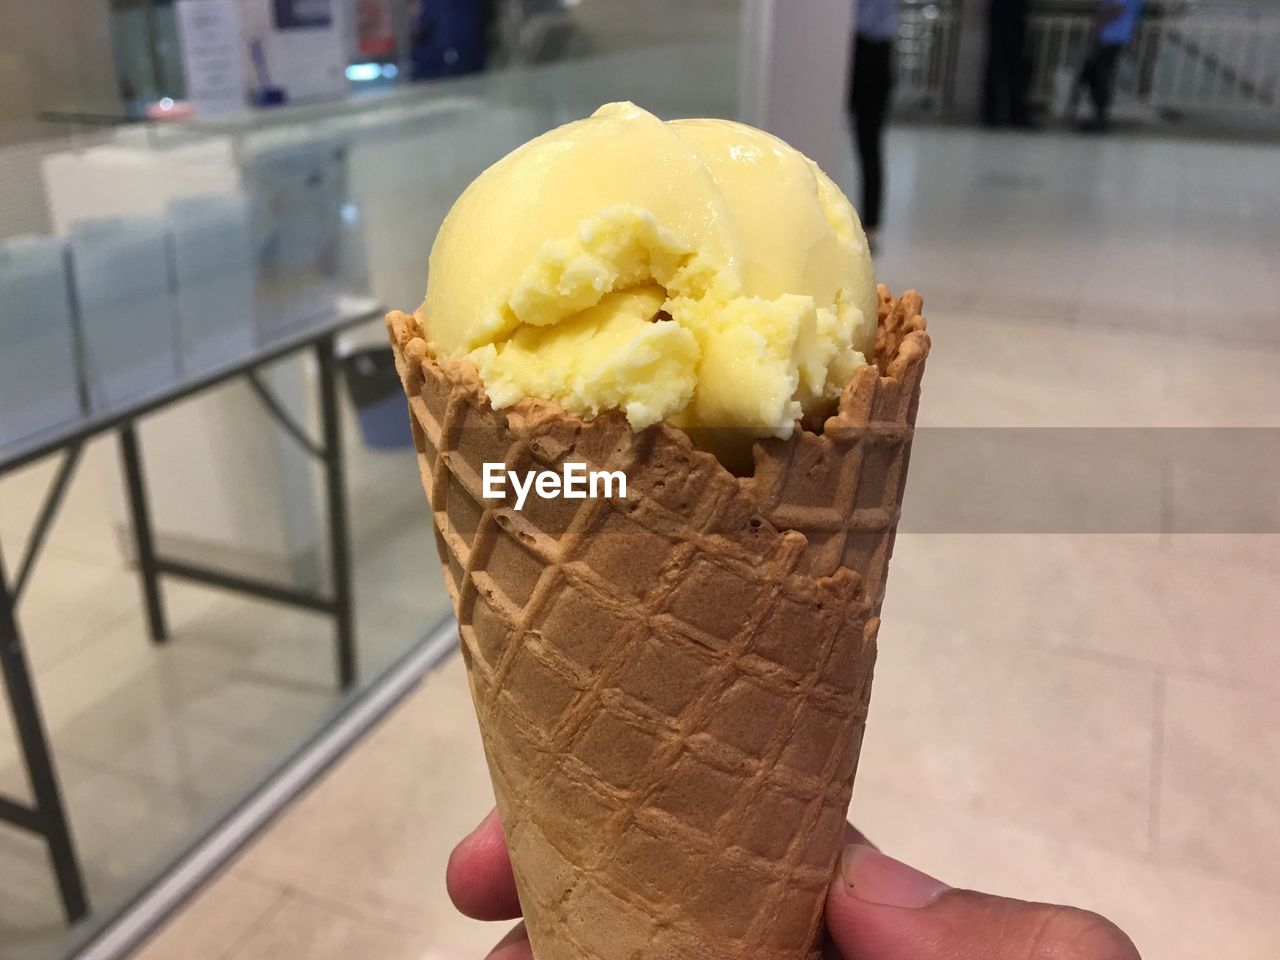 ice cream, sweet, frozen food, sweet food, frozen, dessert, dairy product, food and drink, food, human hand, indulgence, unhealthy eating, human body part, hand, temptation, freshness, unrecognizable person, holding, one person, ice cream cone, body part, finger, frozen sweet food, vanilla ice cream